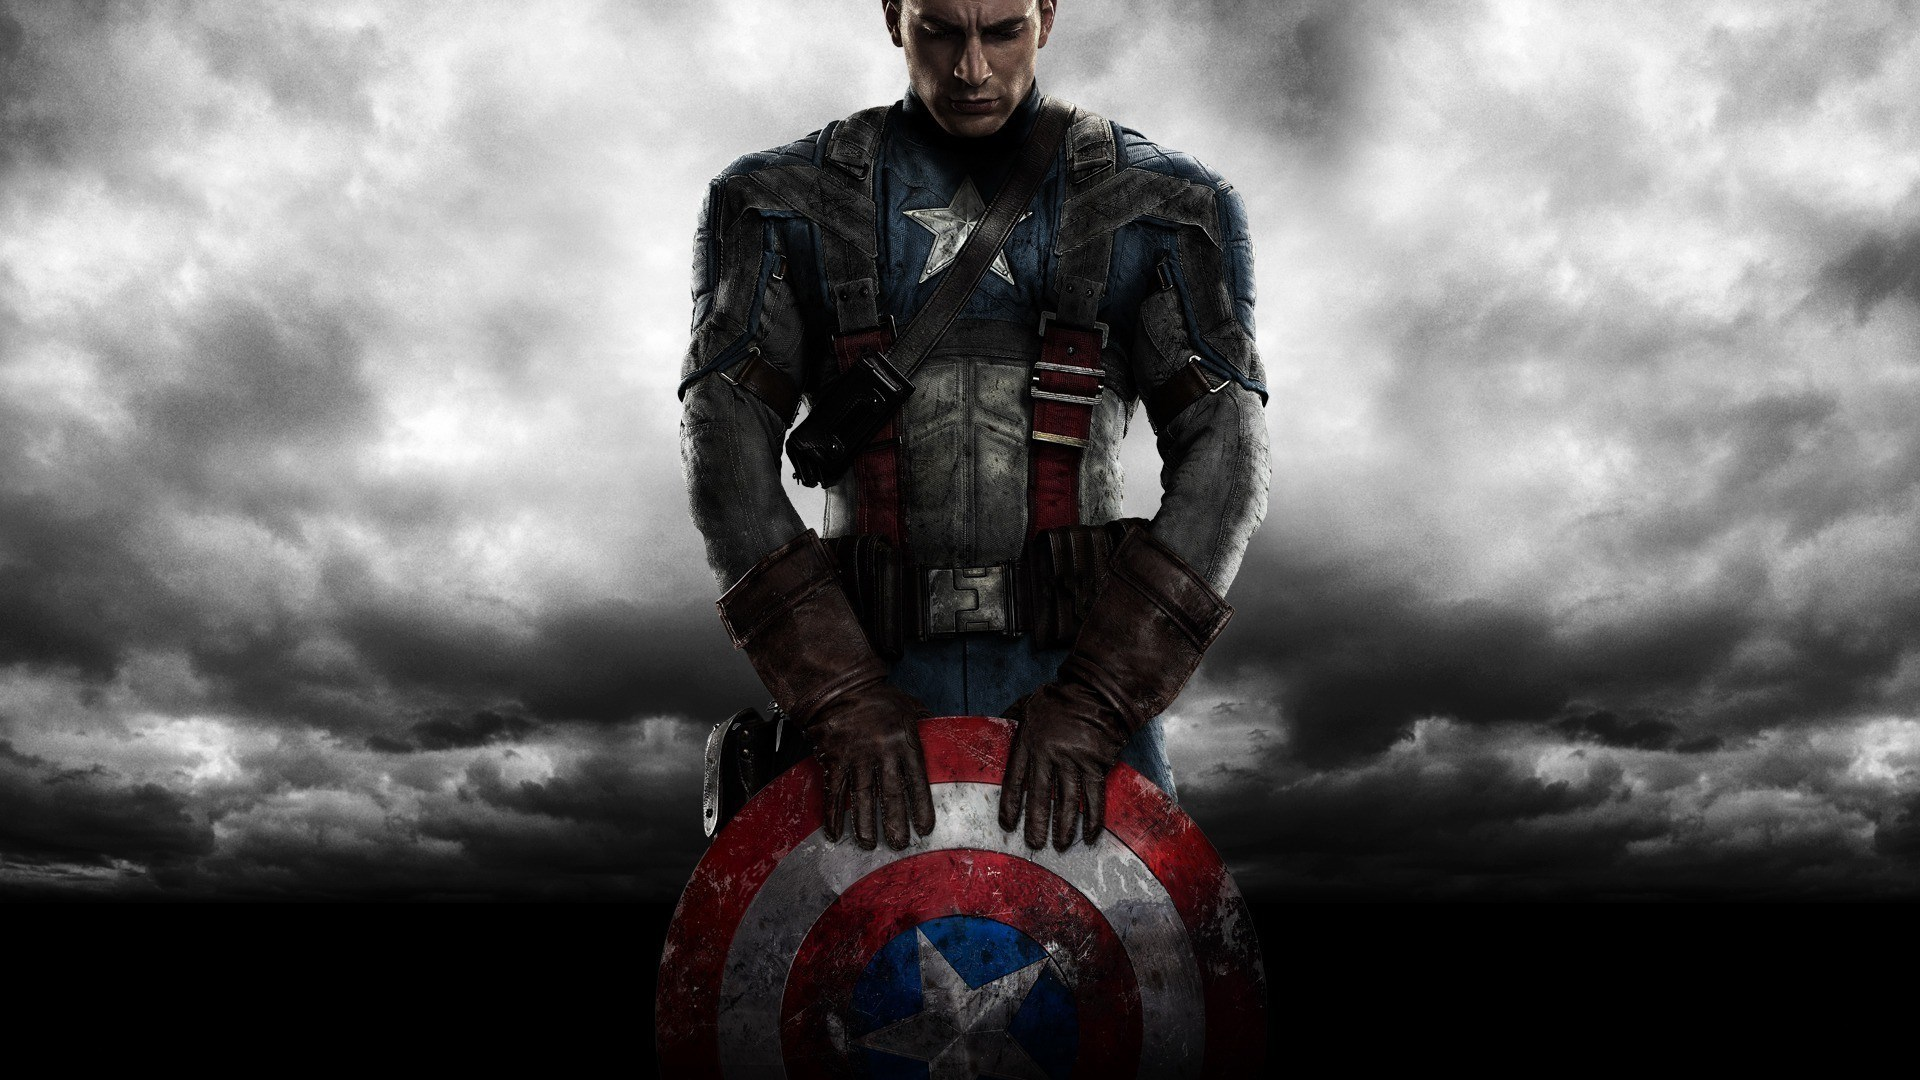 Backgrounds-High-Resolution-captain-america-the-first-avenger-backround-1920x1080-kB-wallpaper-wpc9002549